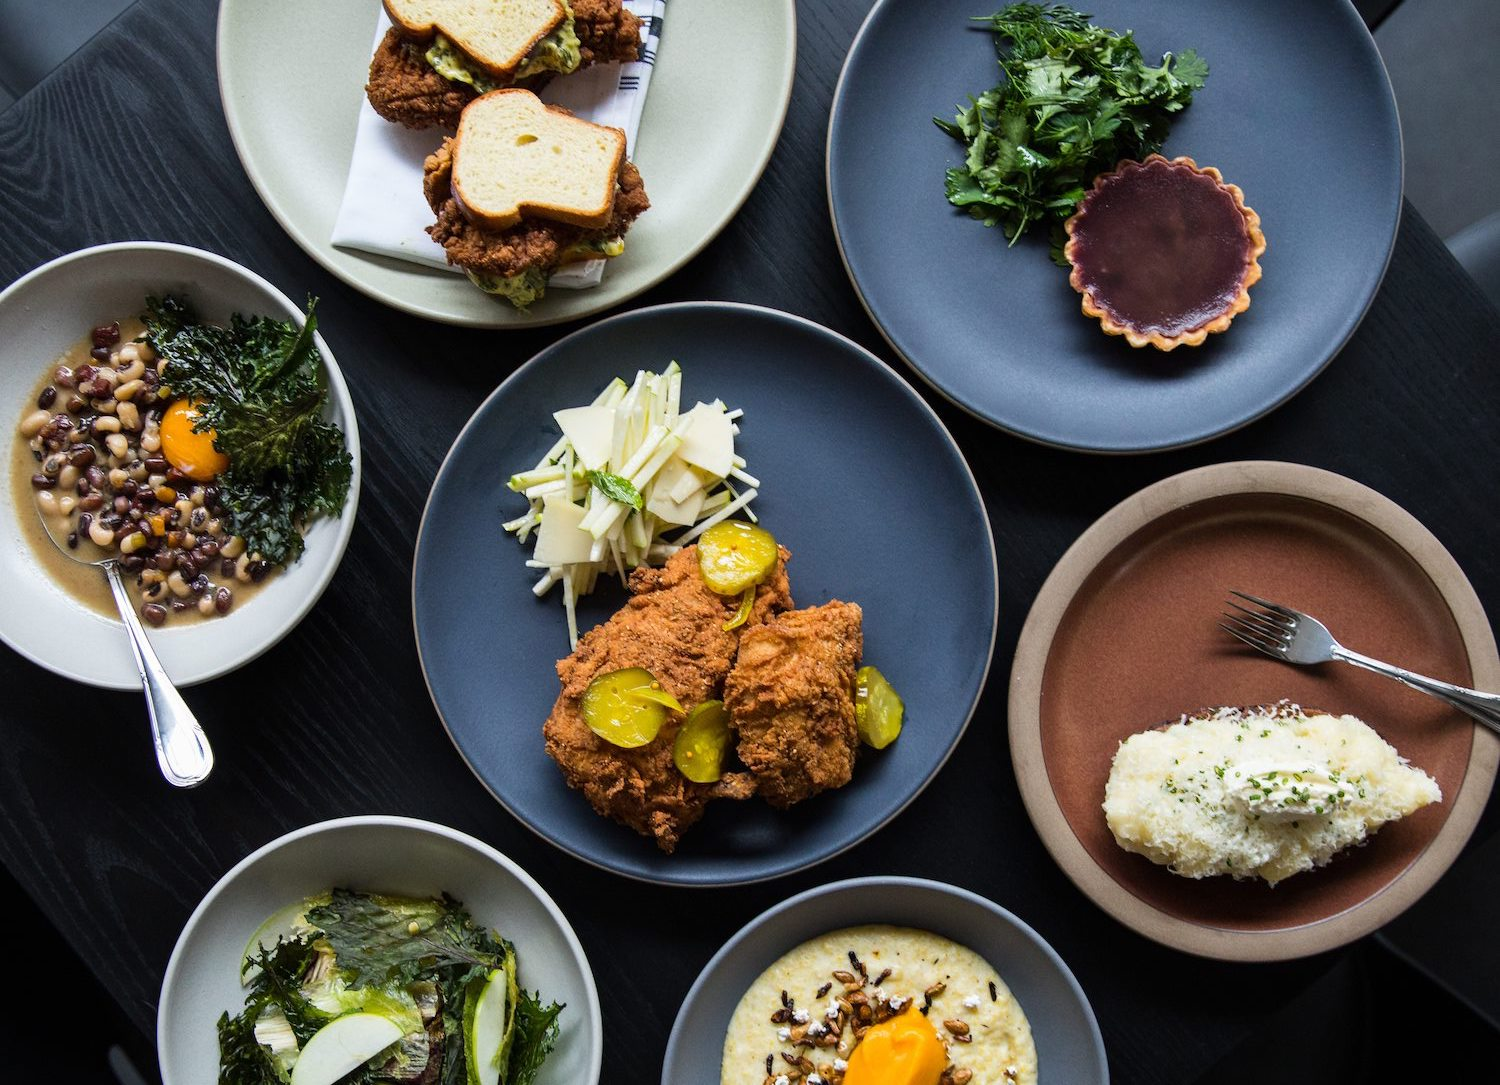 30 Most Exciting Food Cities in America 2017 - Zagat